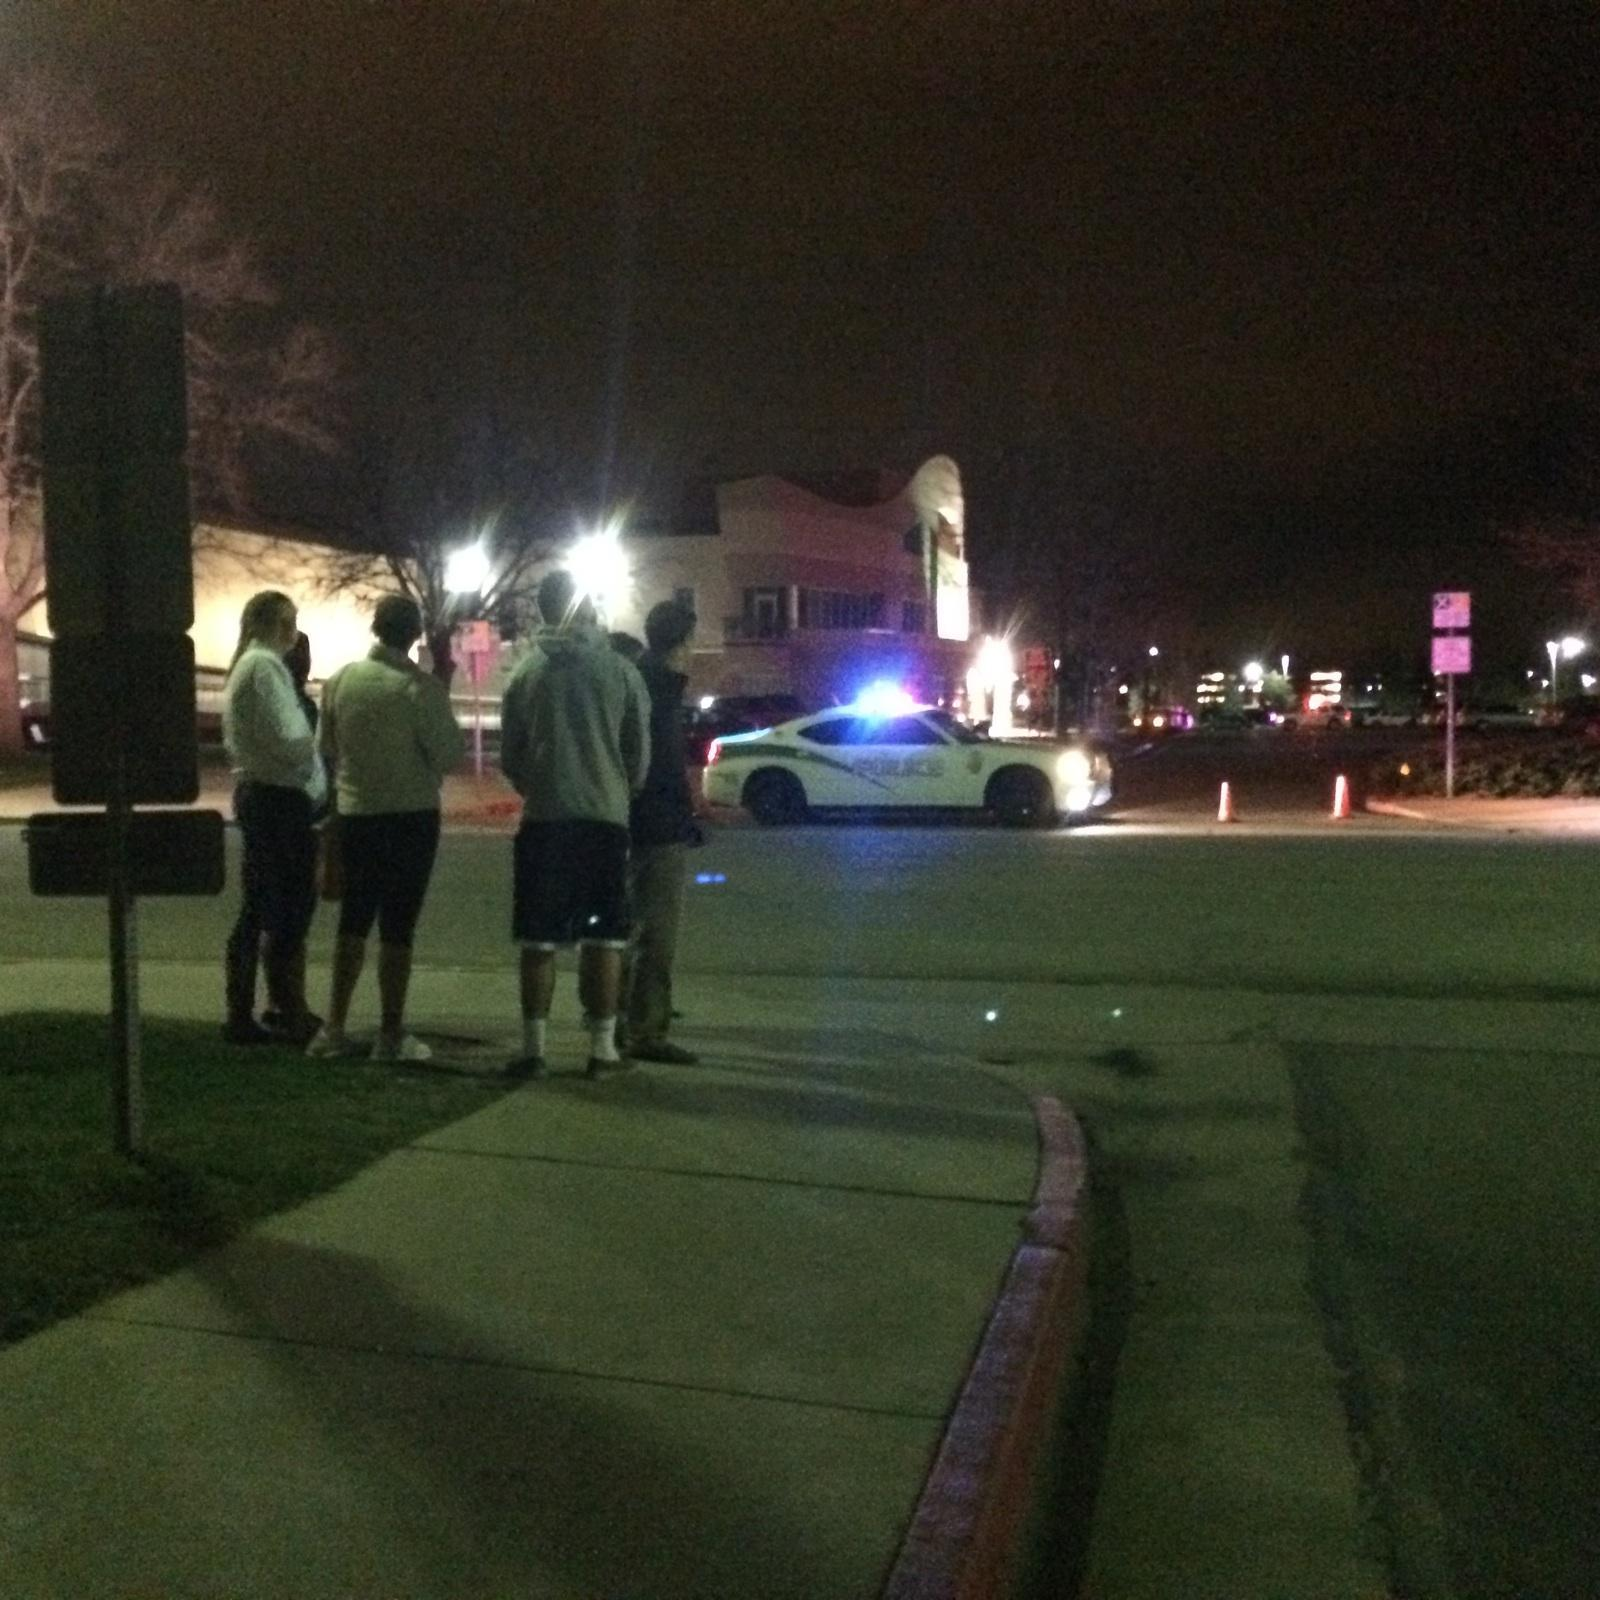 CSU students look on as campus police officers investigate a suspicious object outside of Moby Arena. The object turned out to be harmless according to police.